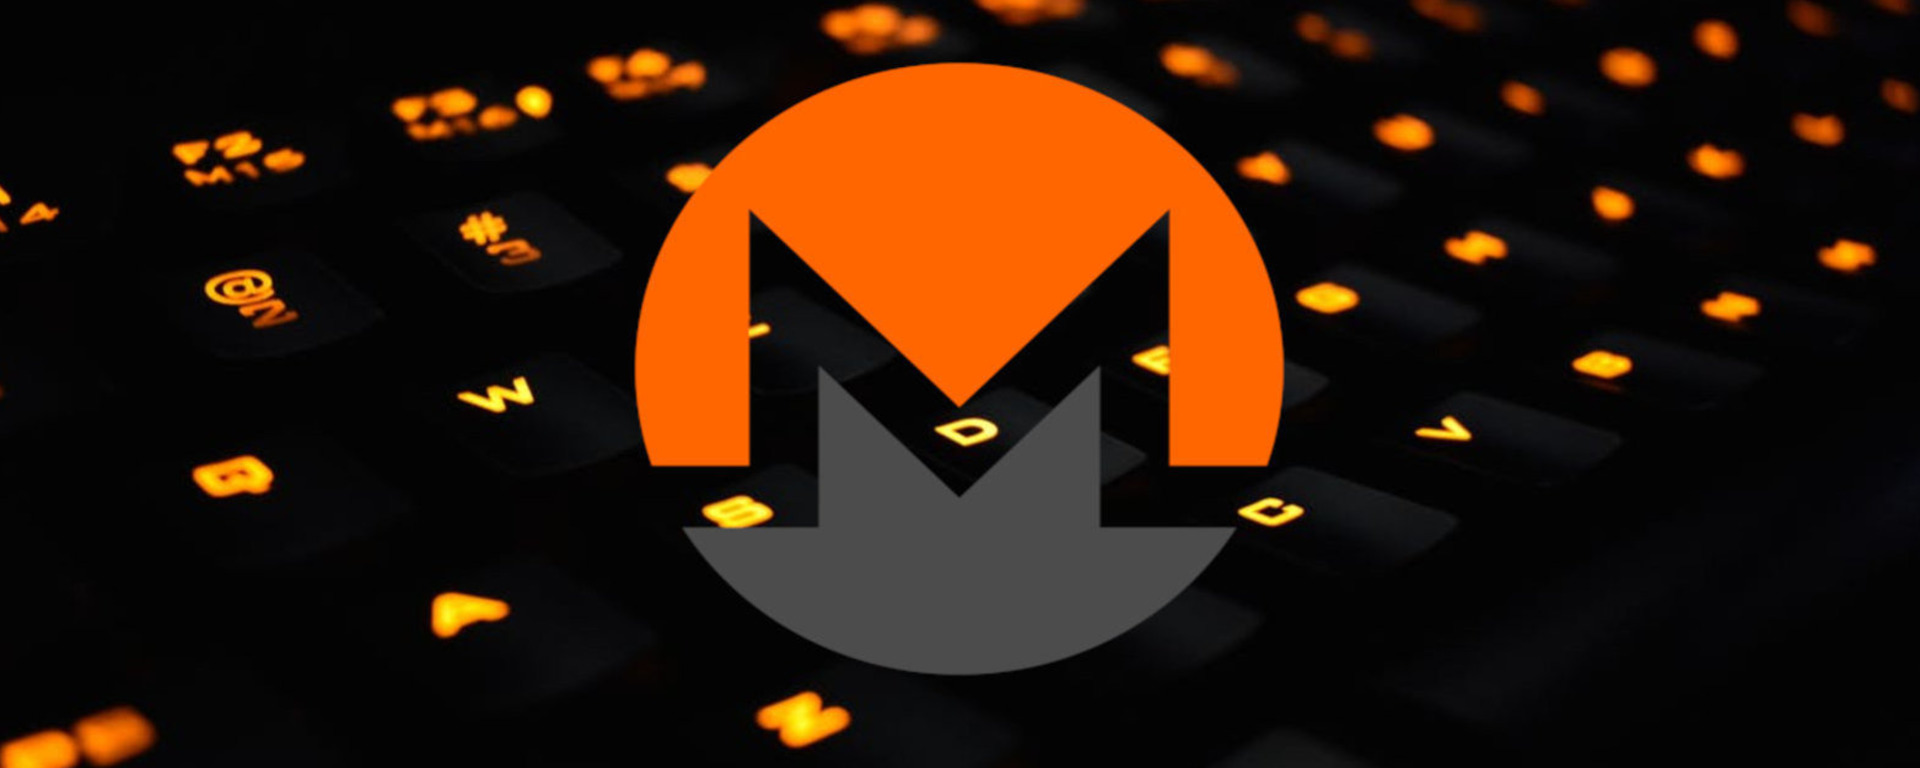 Monero is on the rise on Google Trends again 18